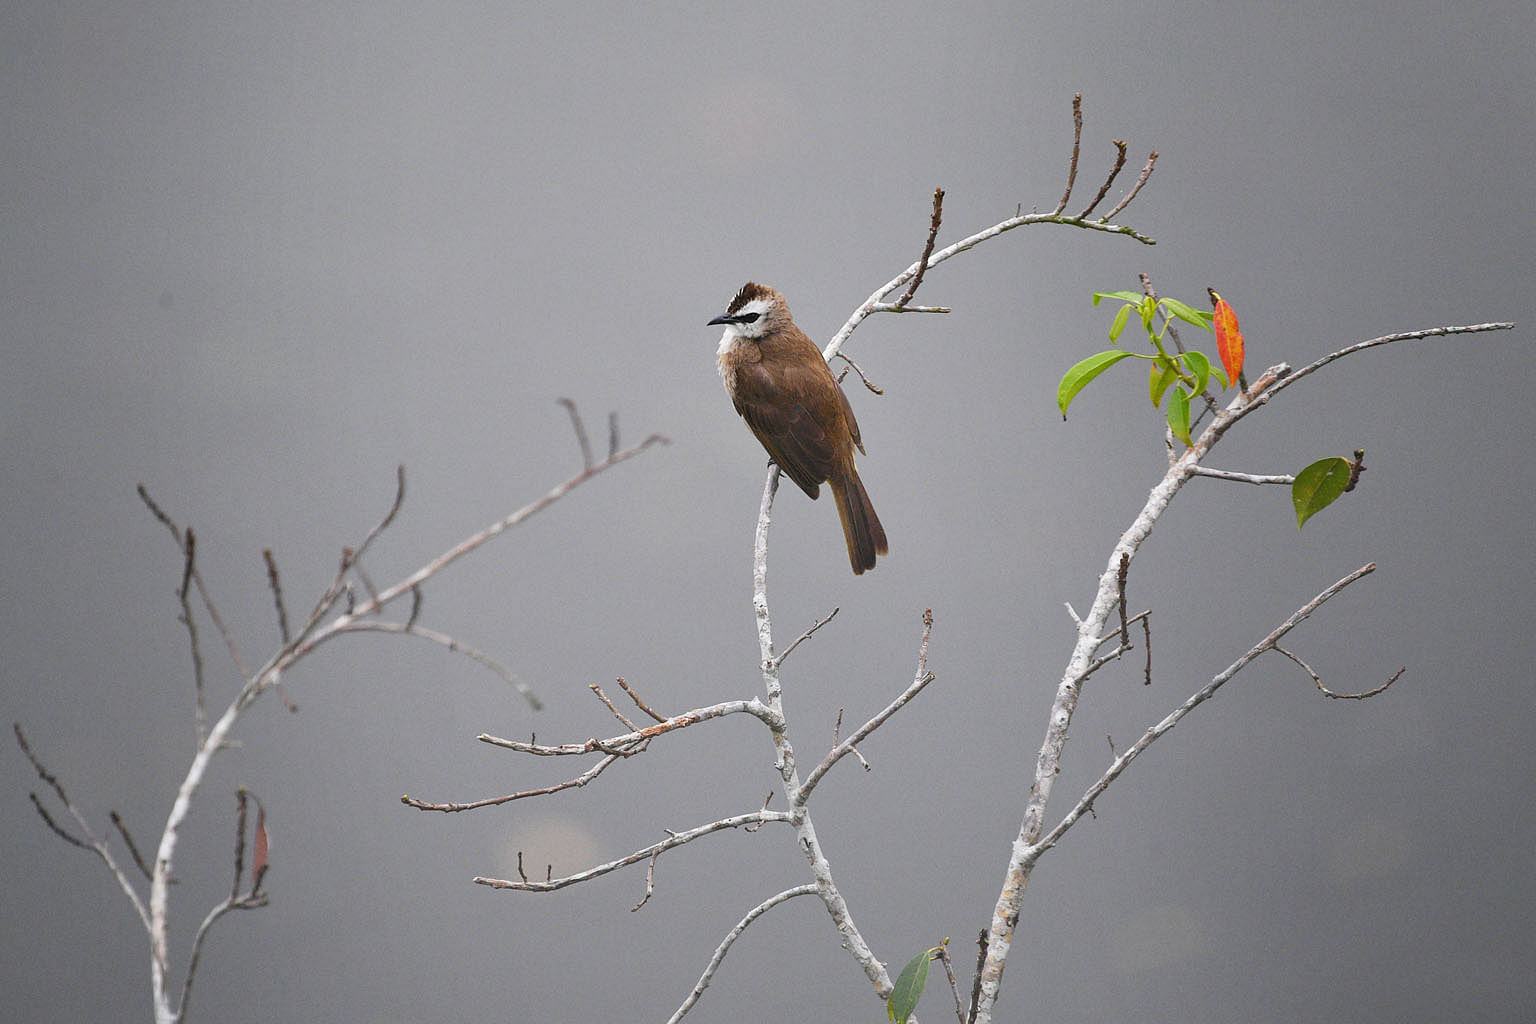 One of the native resident birds commonly sighted at the Sungei Buloh Wetland Reserve is the yellow-vented bulbul (above).